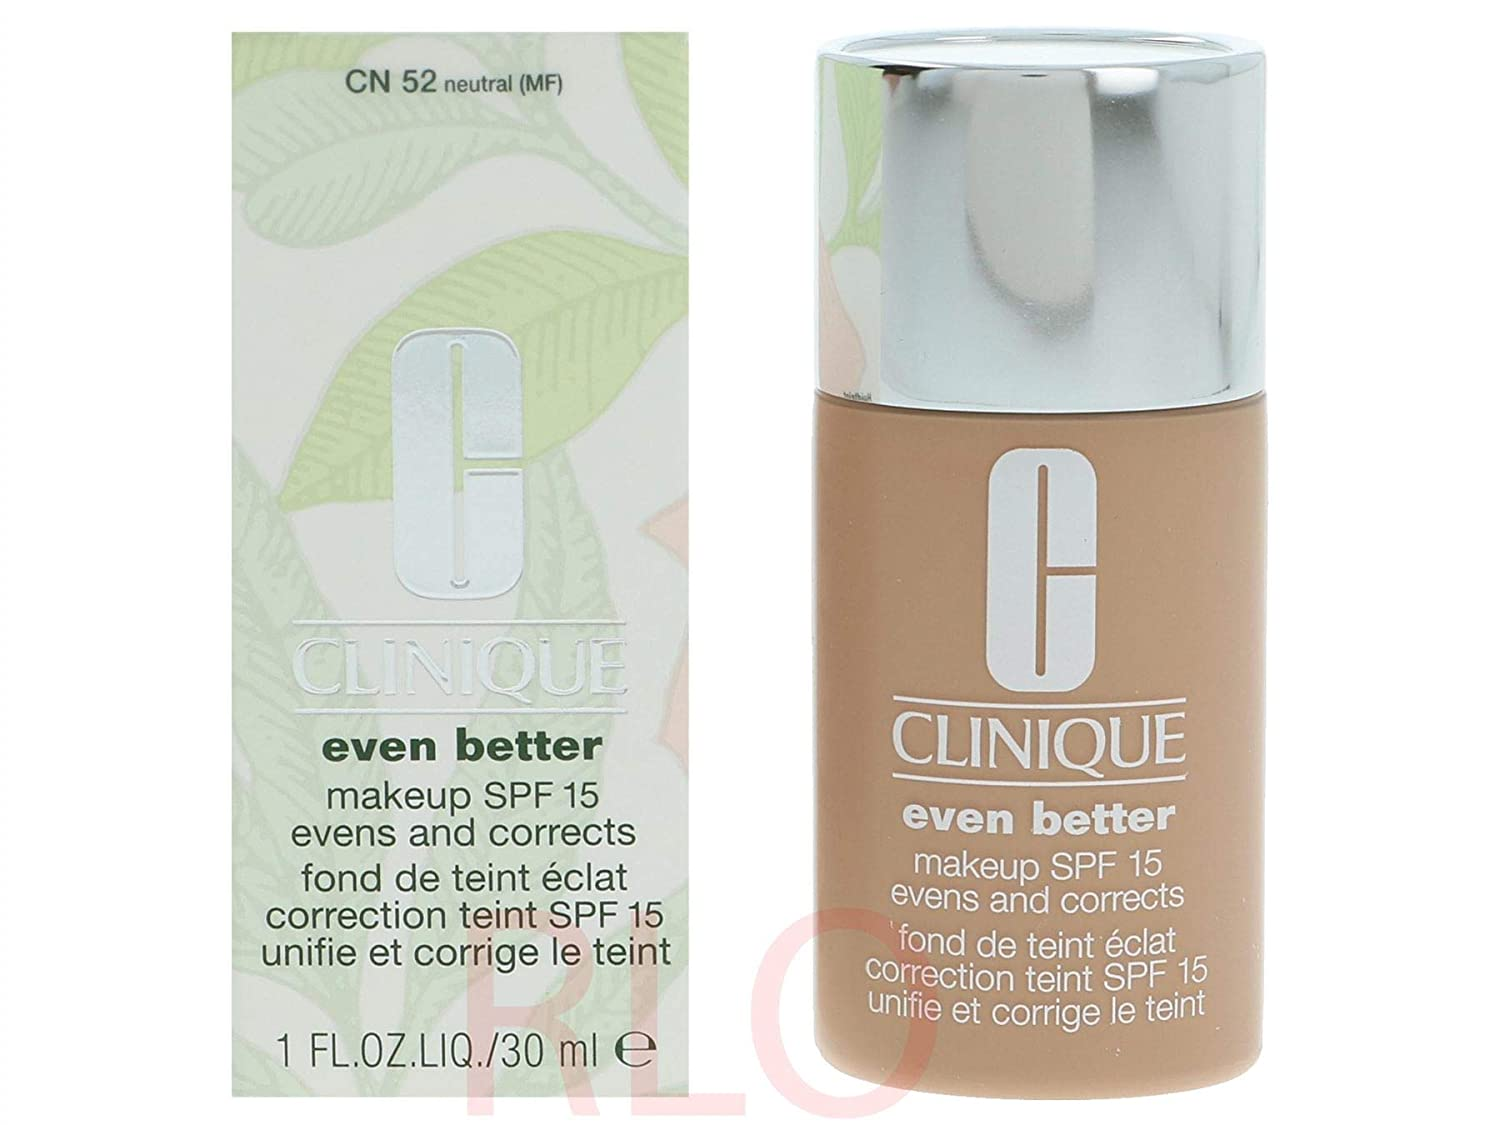 Clinique Even Better Makeup SPF 15 (CN 52 Neutral MF) 30 ml 9978